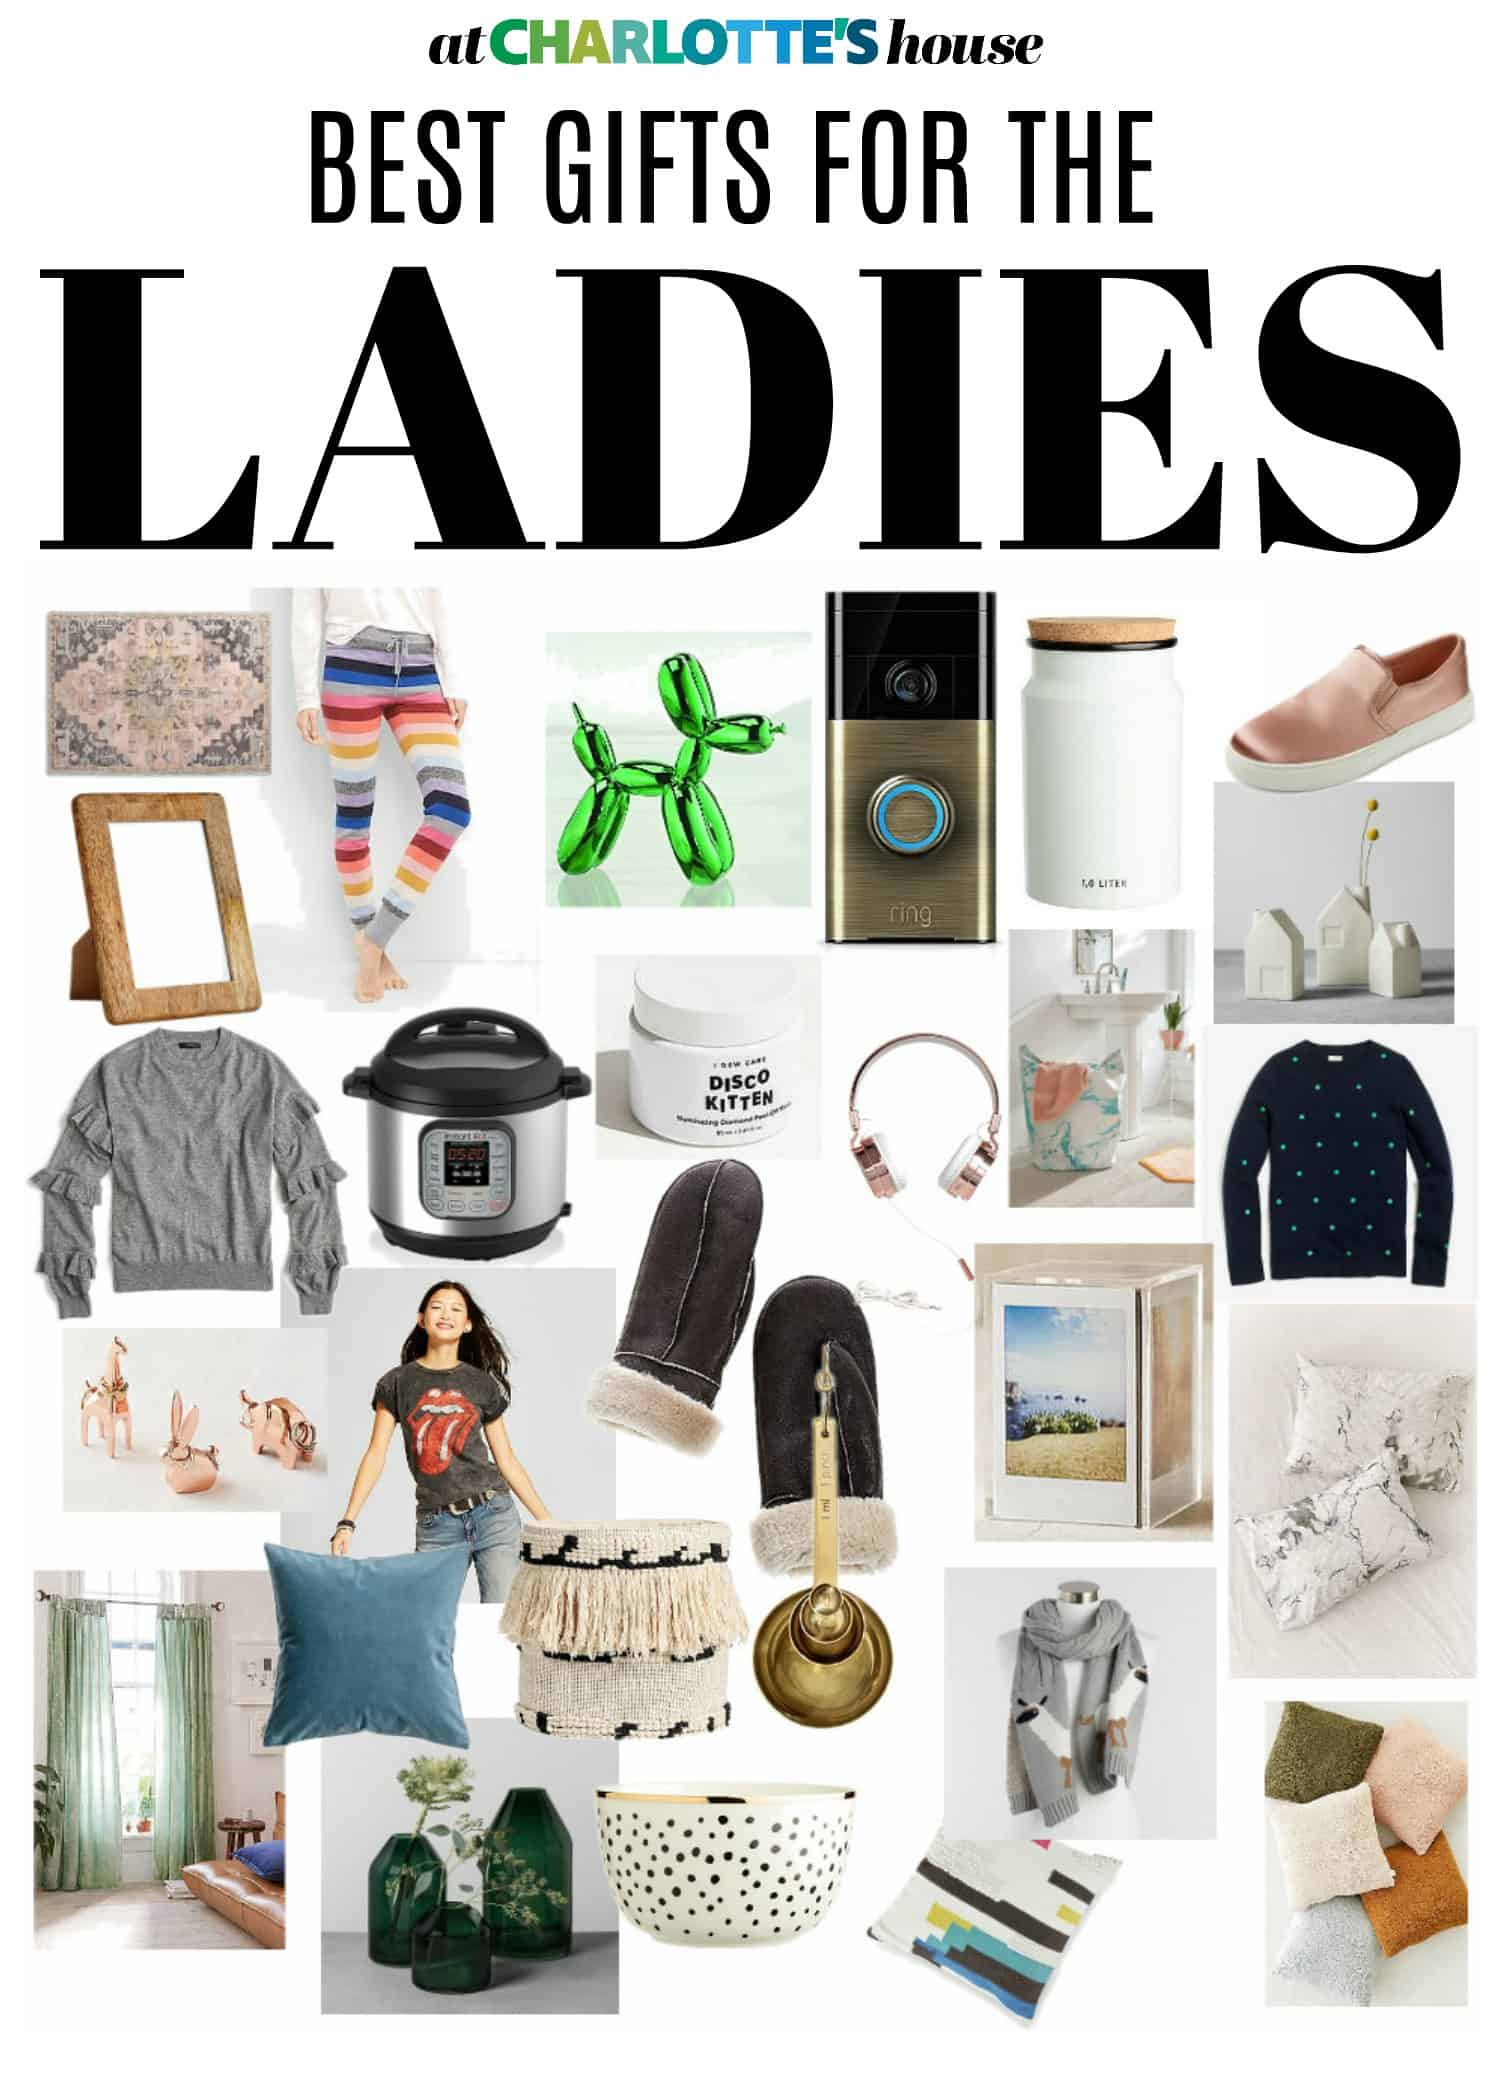 55+ gift ideas for all the ladies in your life